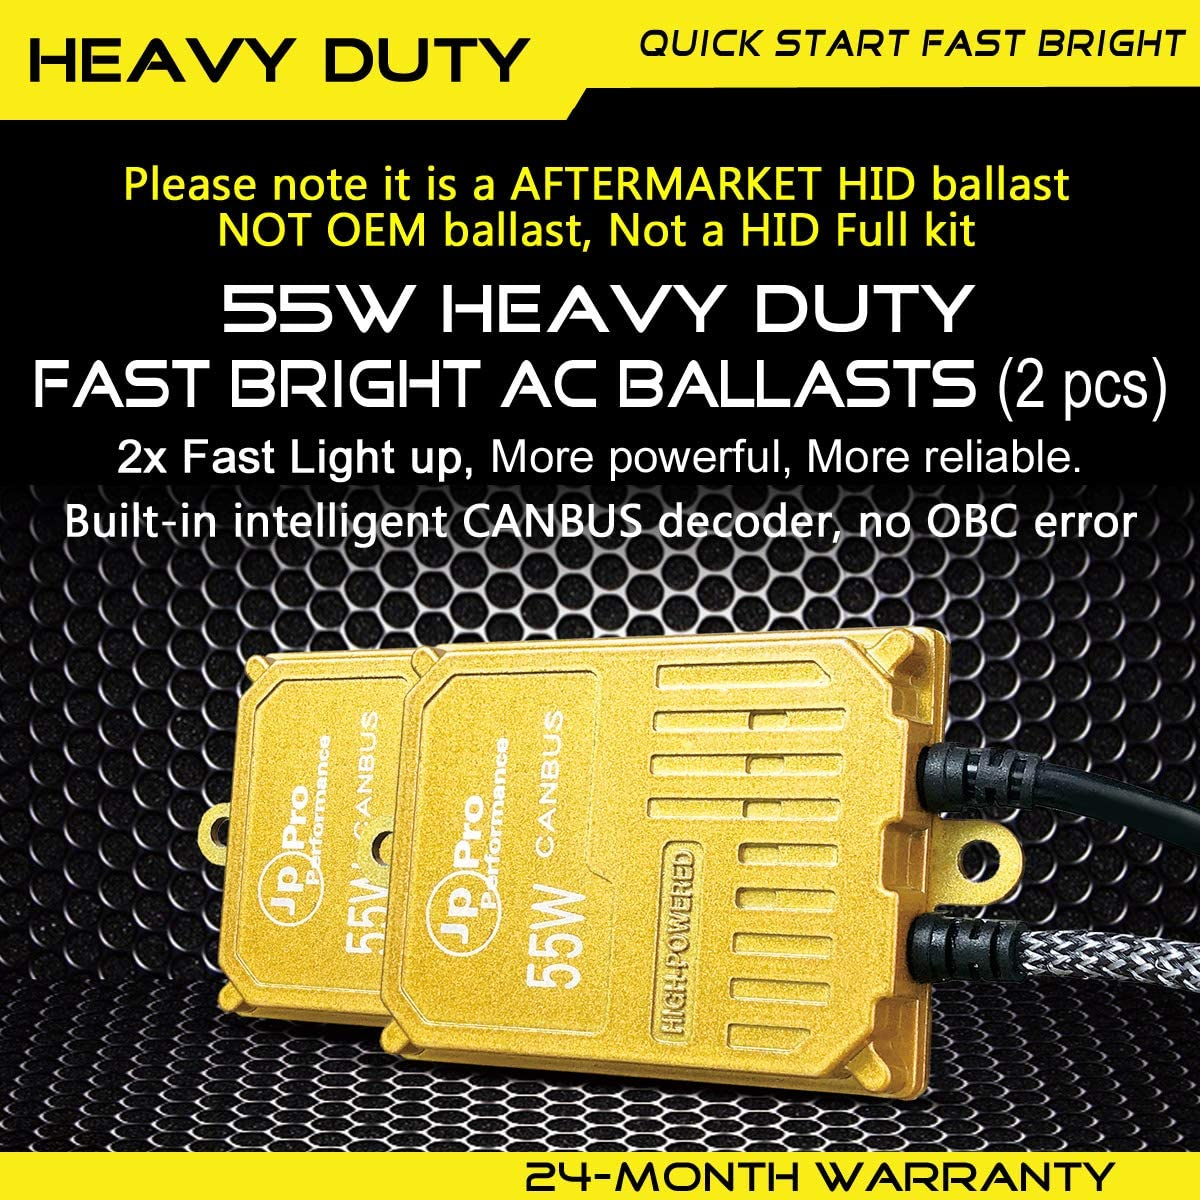 Pack of 2 55W 9006 HB4 Heavy Duty Fast Bright CANBUS AC HID Xenon Replacement Ballast for 12V Vehicles Aftermarket HID System